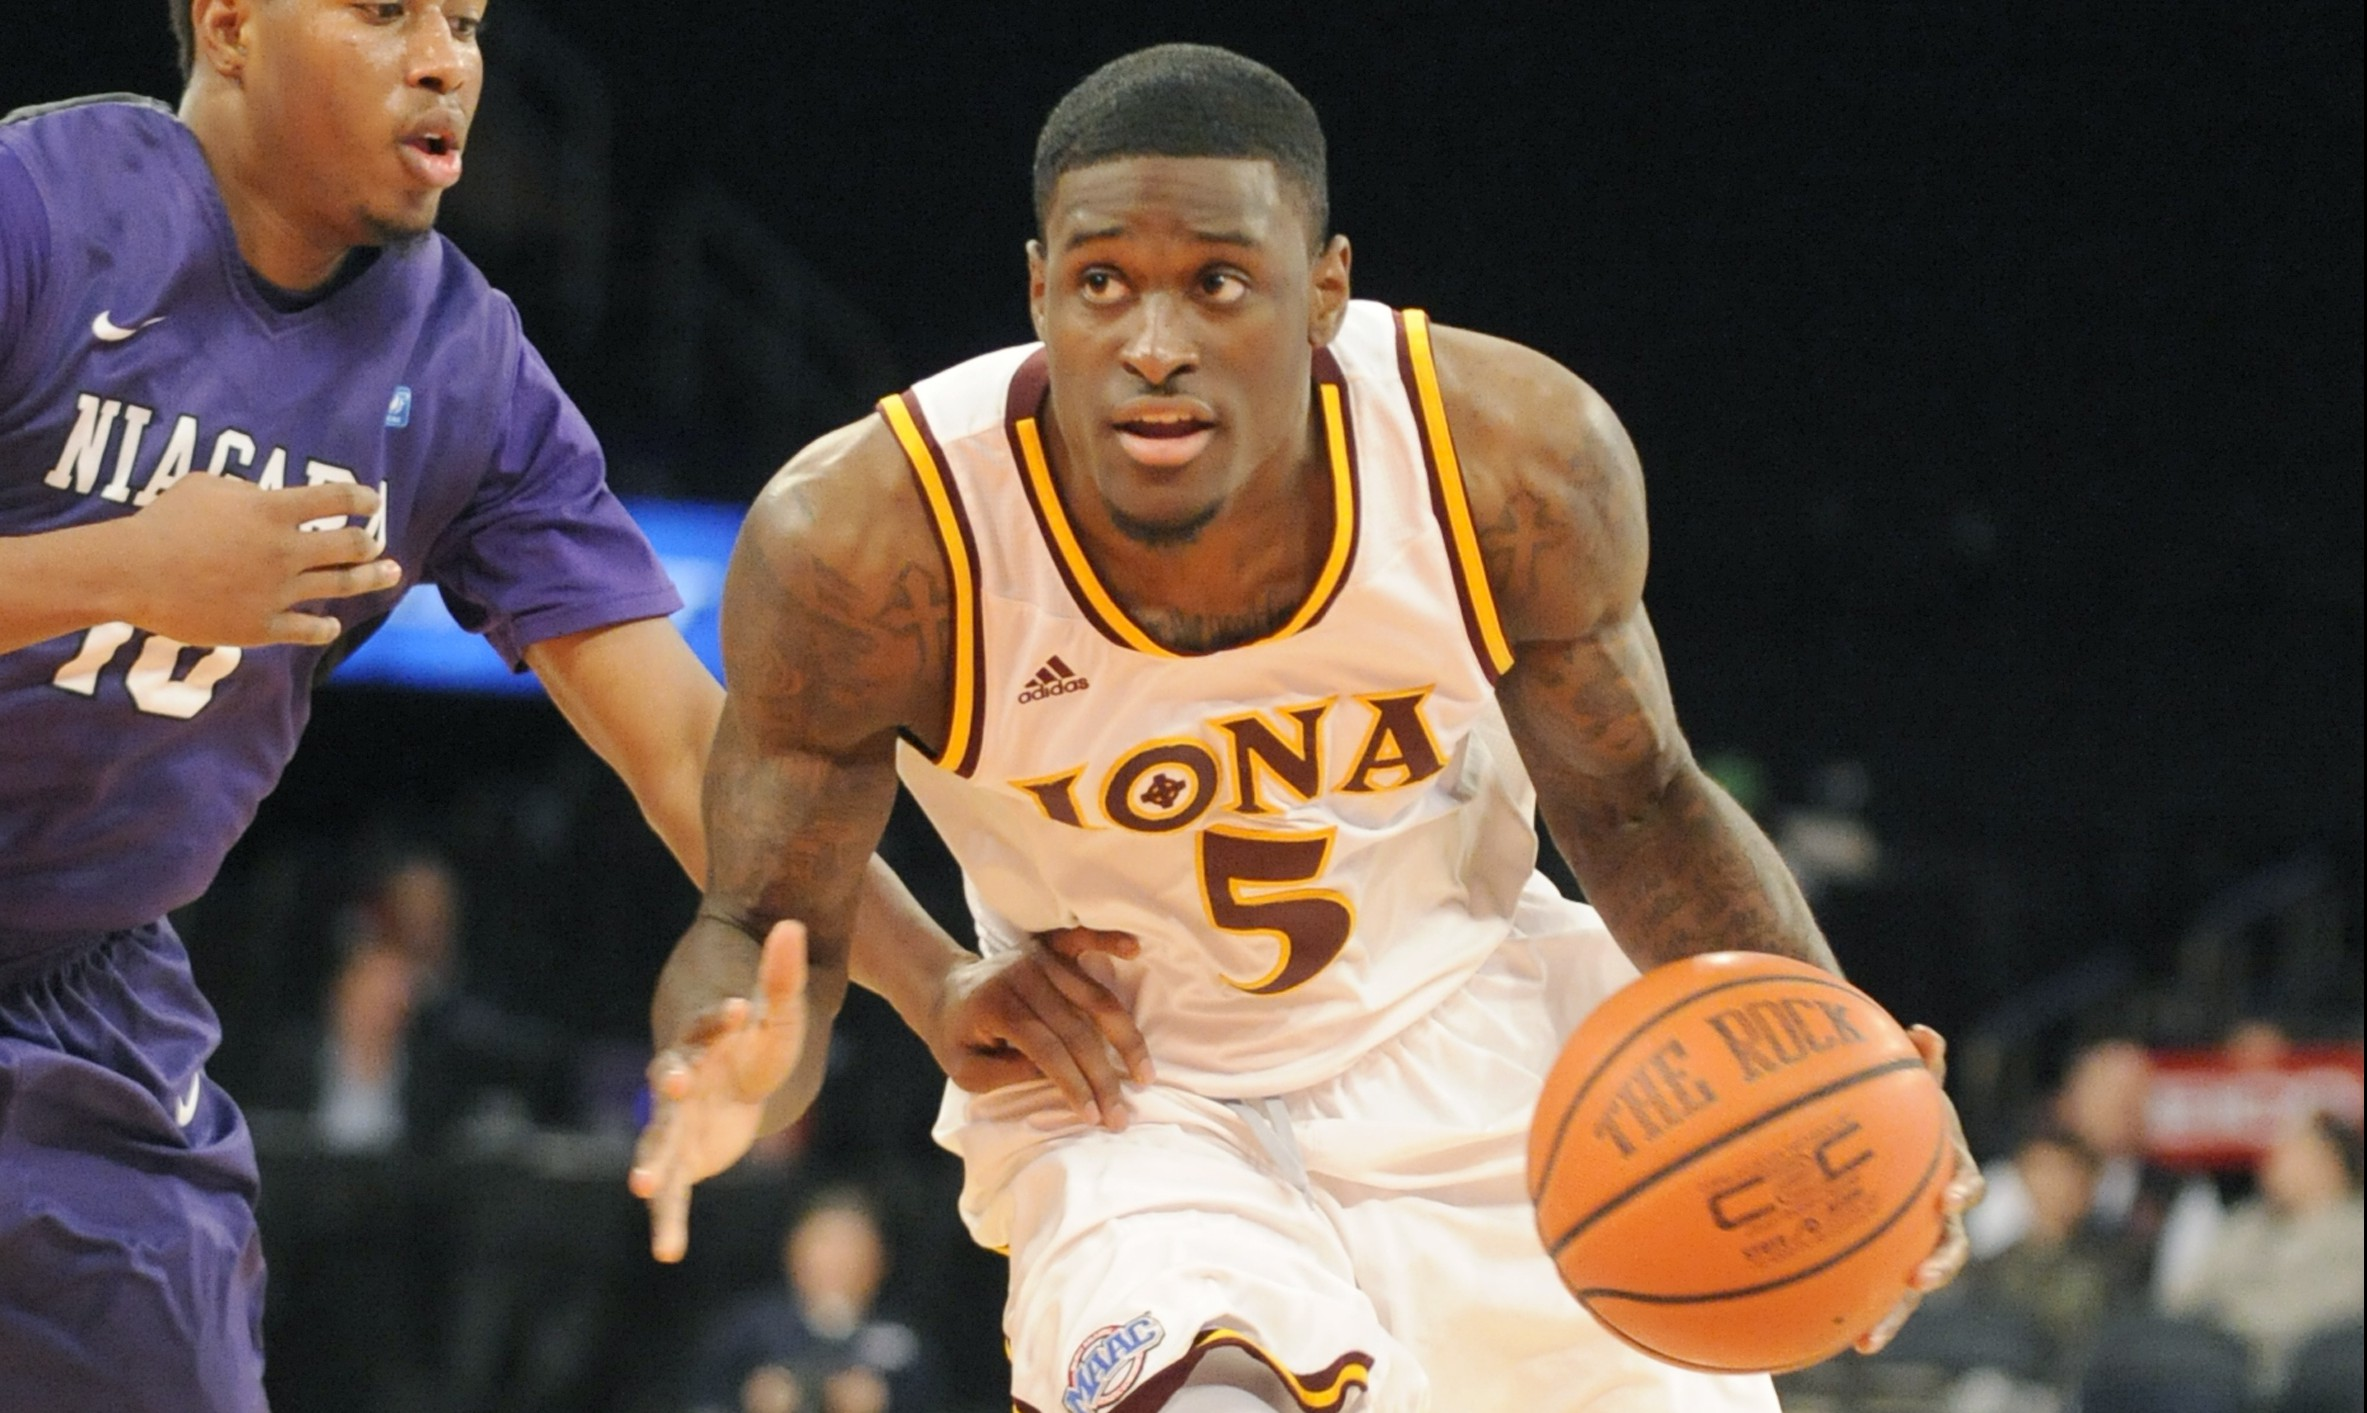 Iona guard A.J. English (Getty Images)